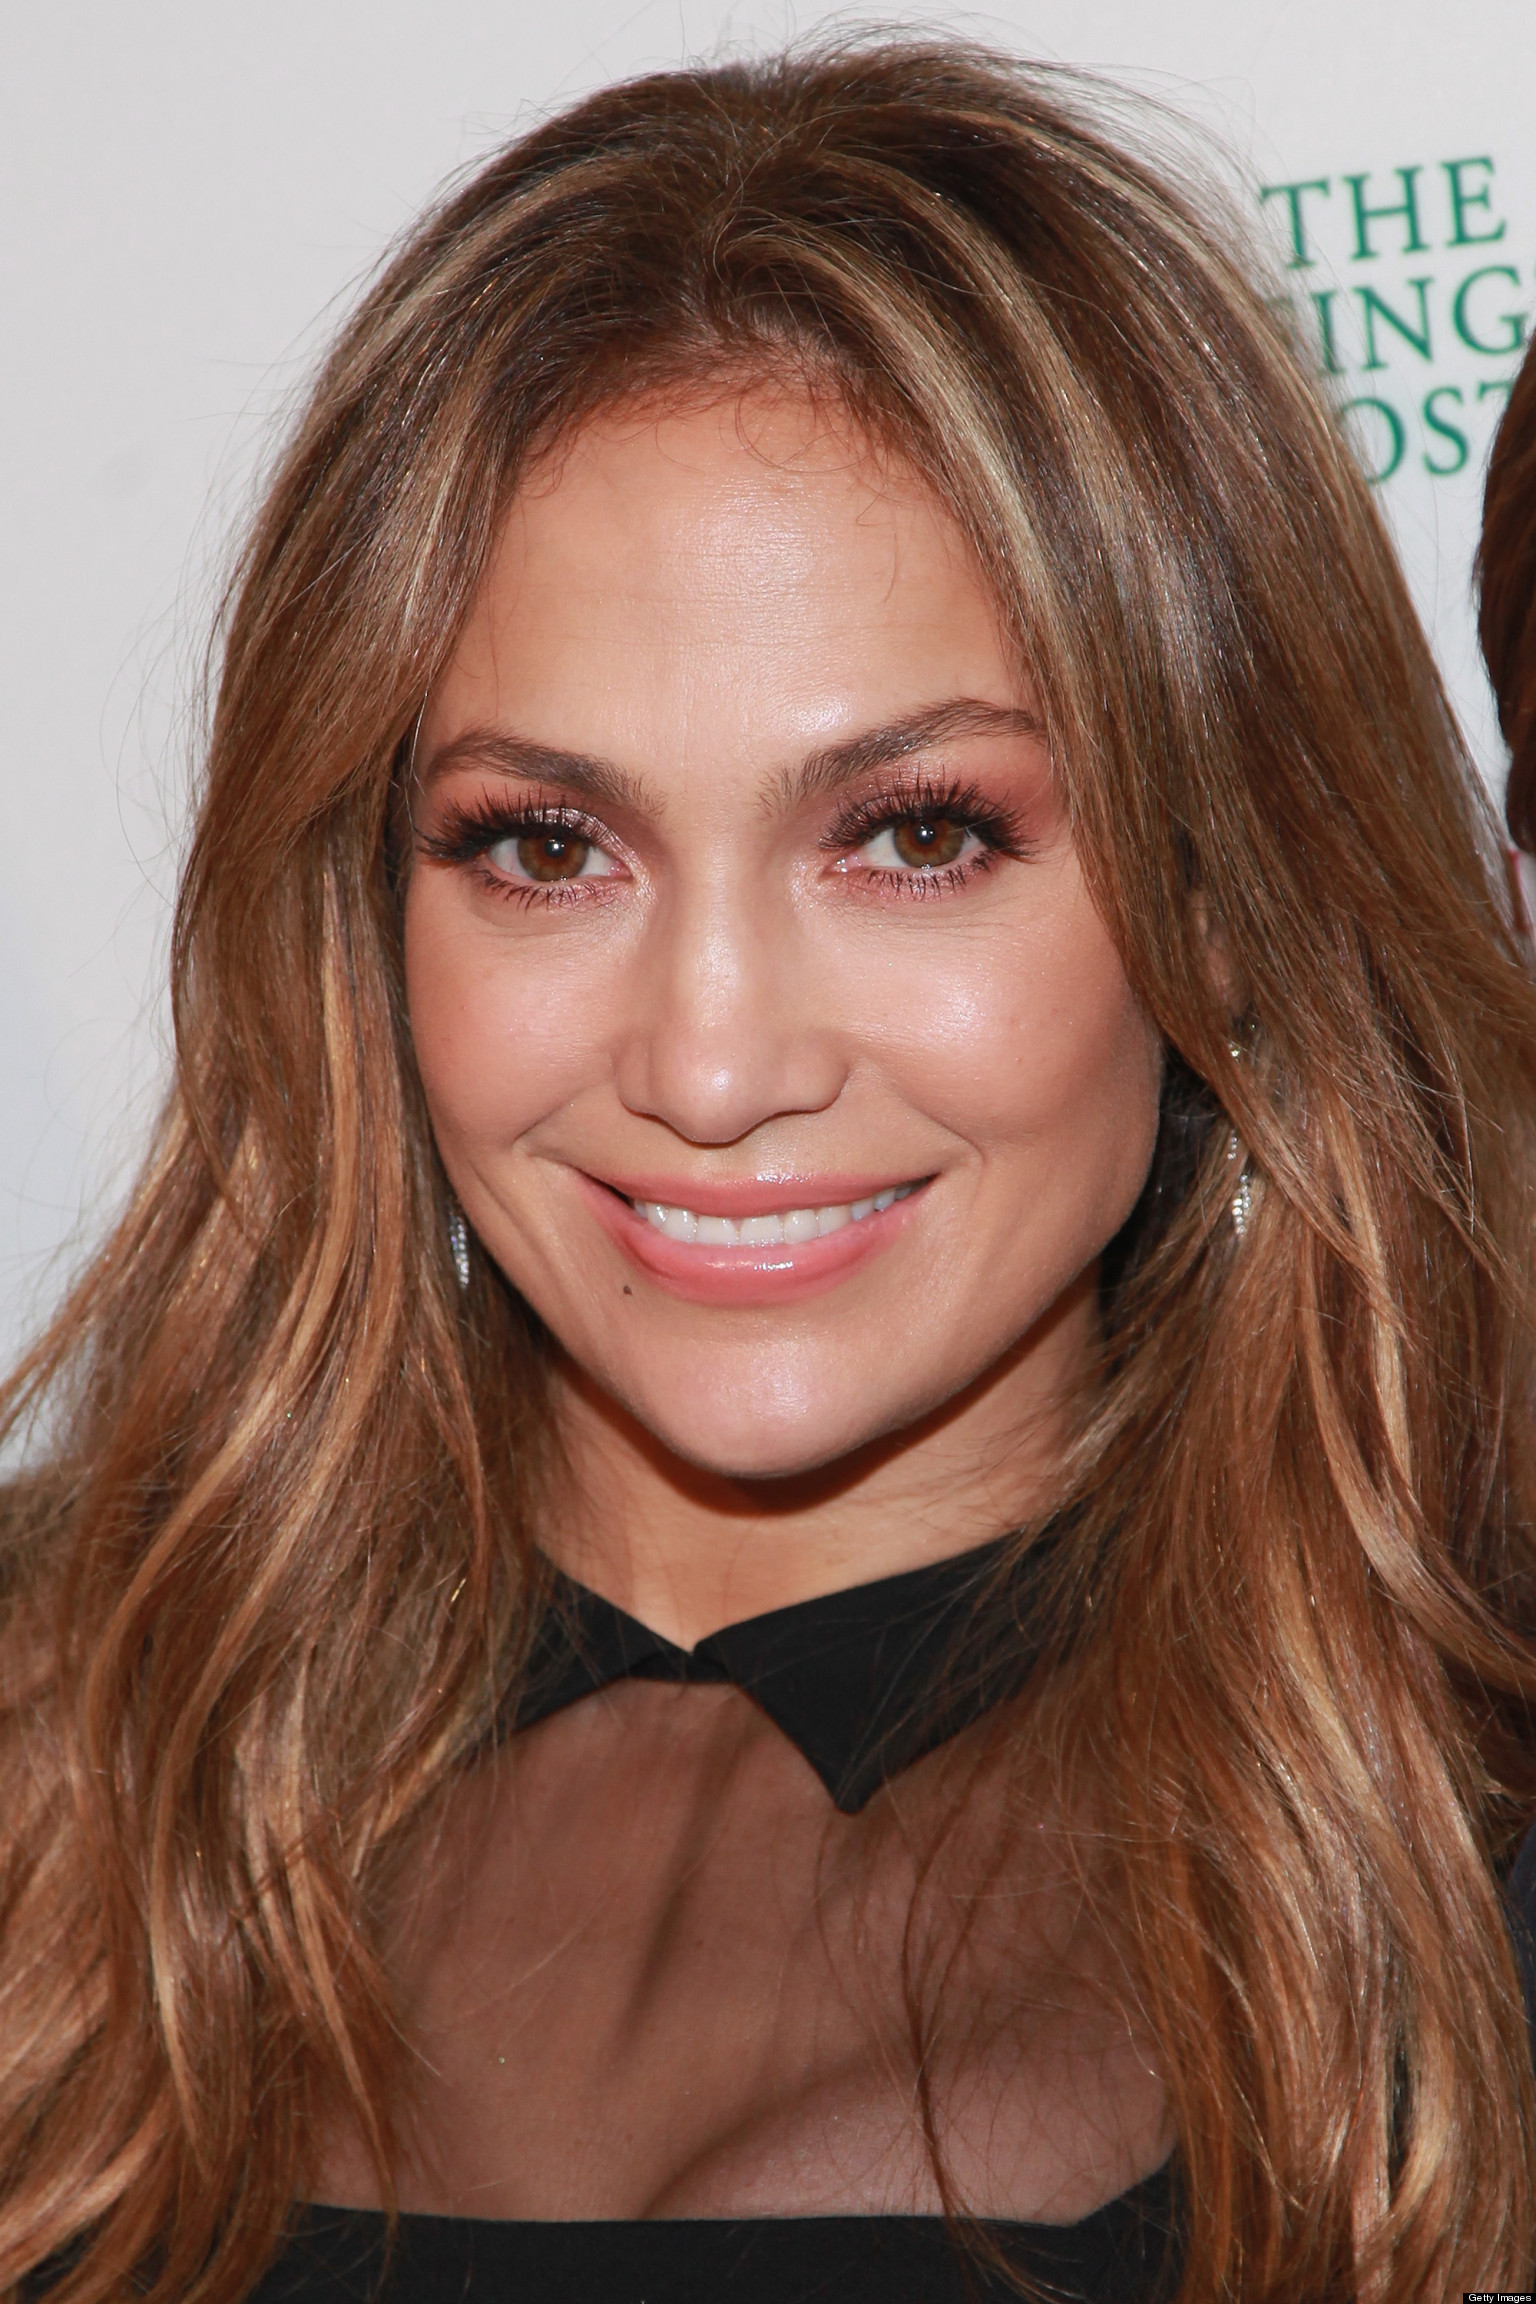 J.Lo's Surprising Admission About Marriage